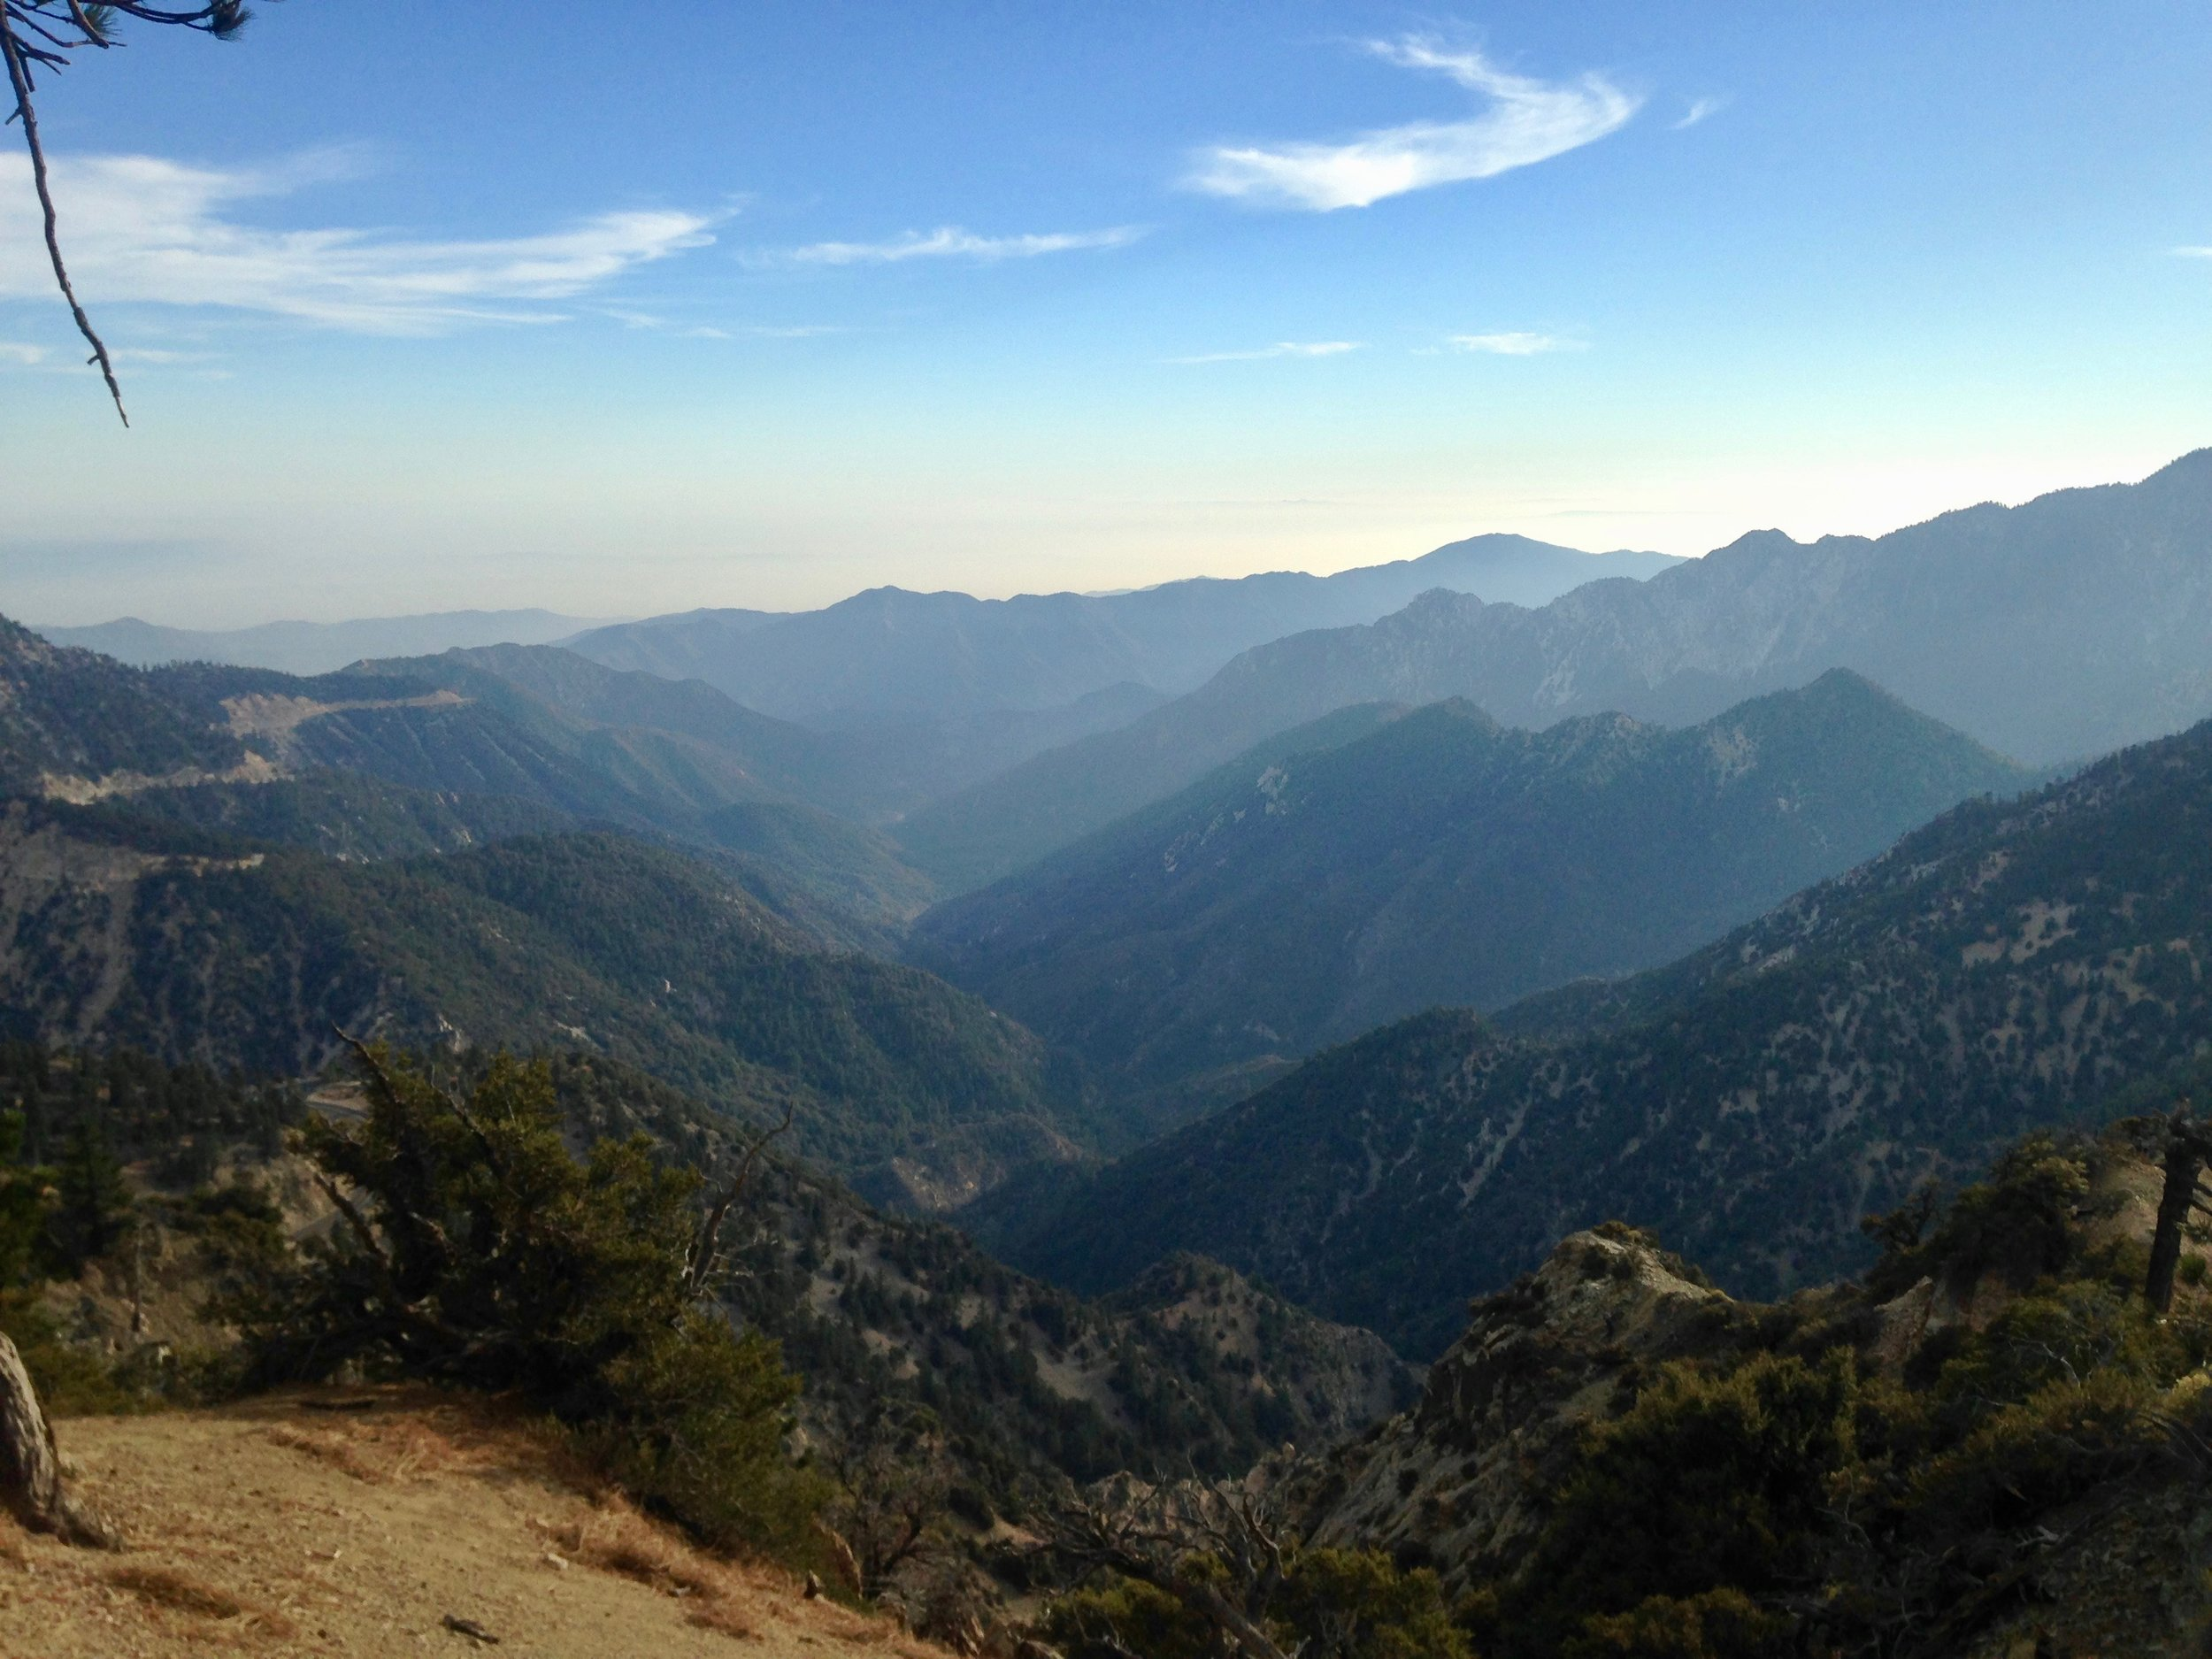 Angeles National Forest, CA